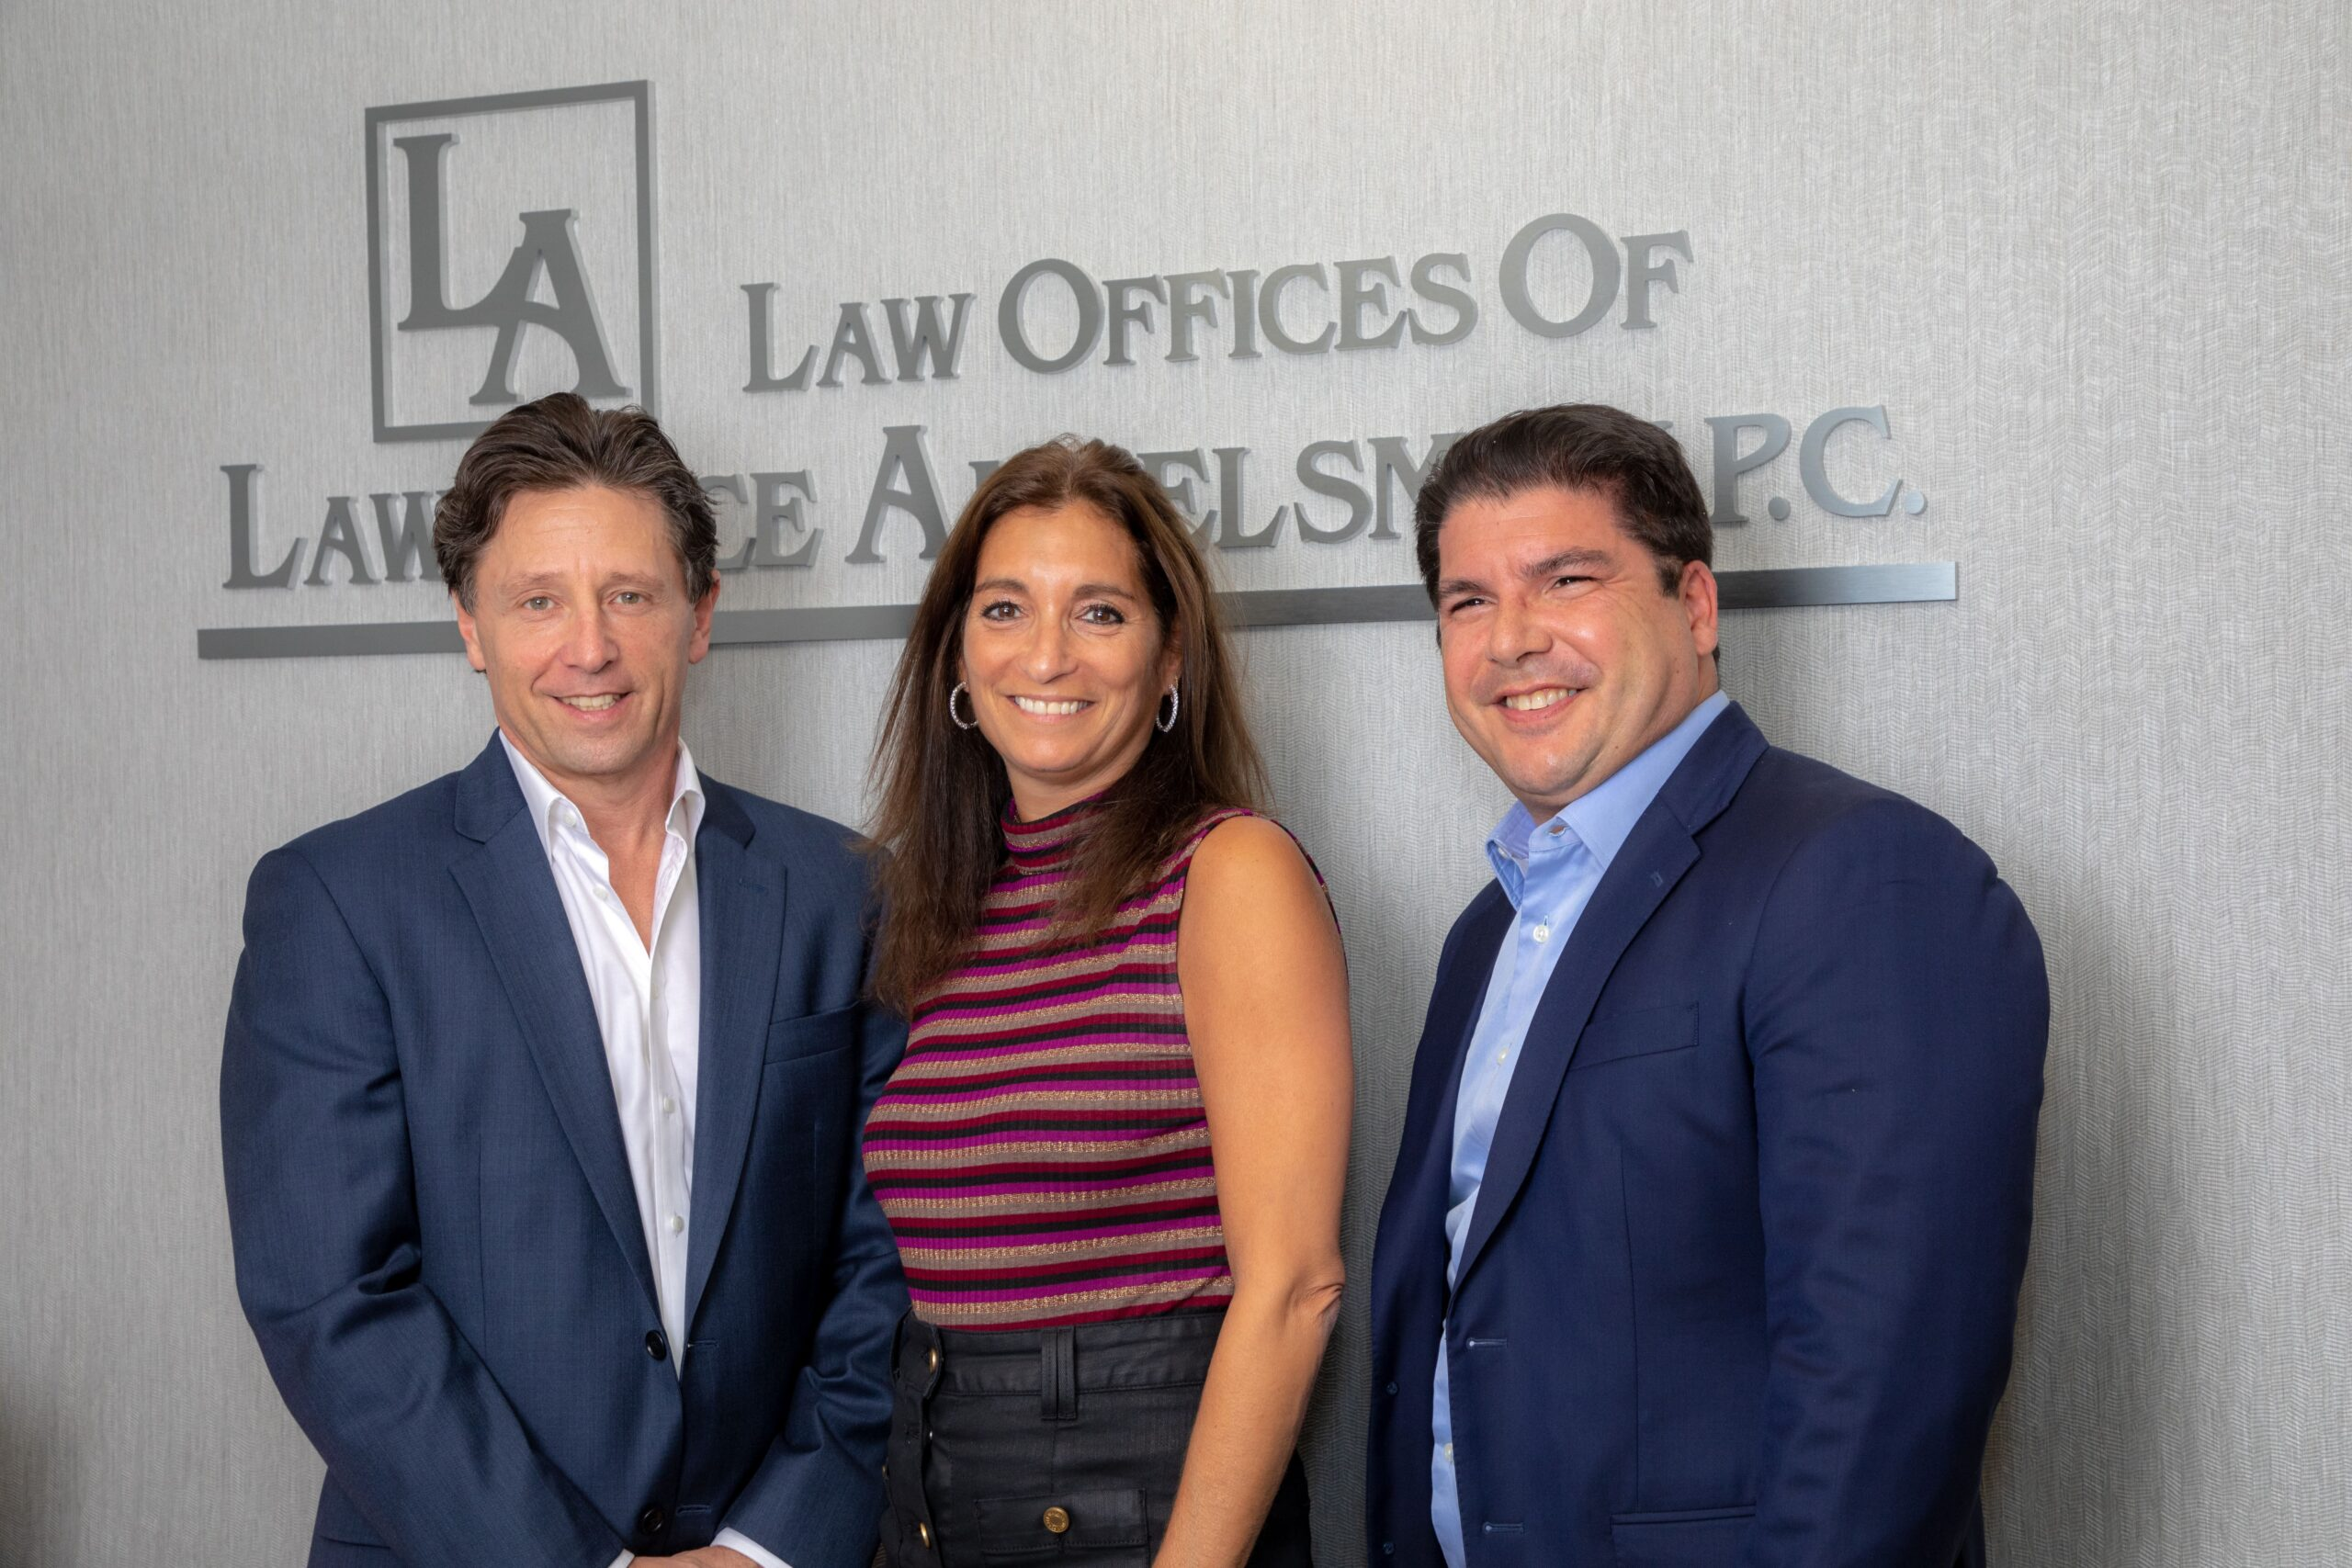 About Andelsman Law Private Lending Law Firm